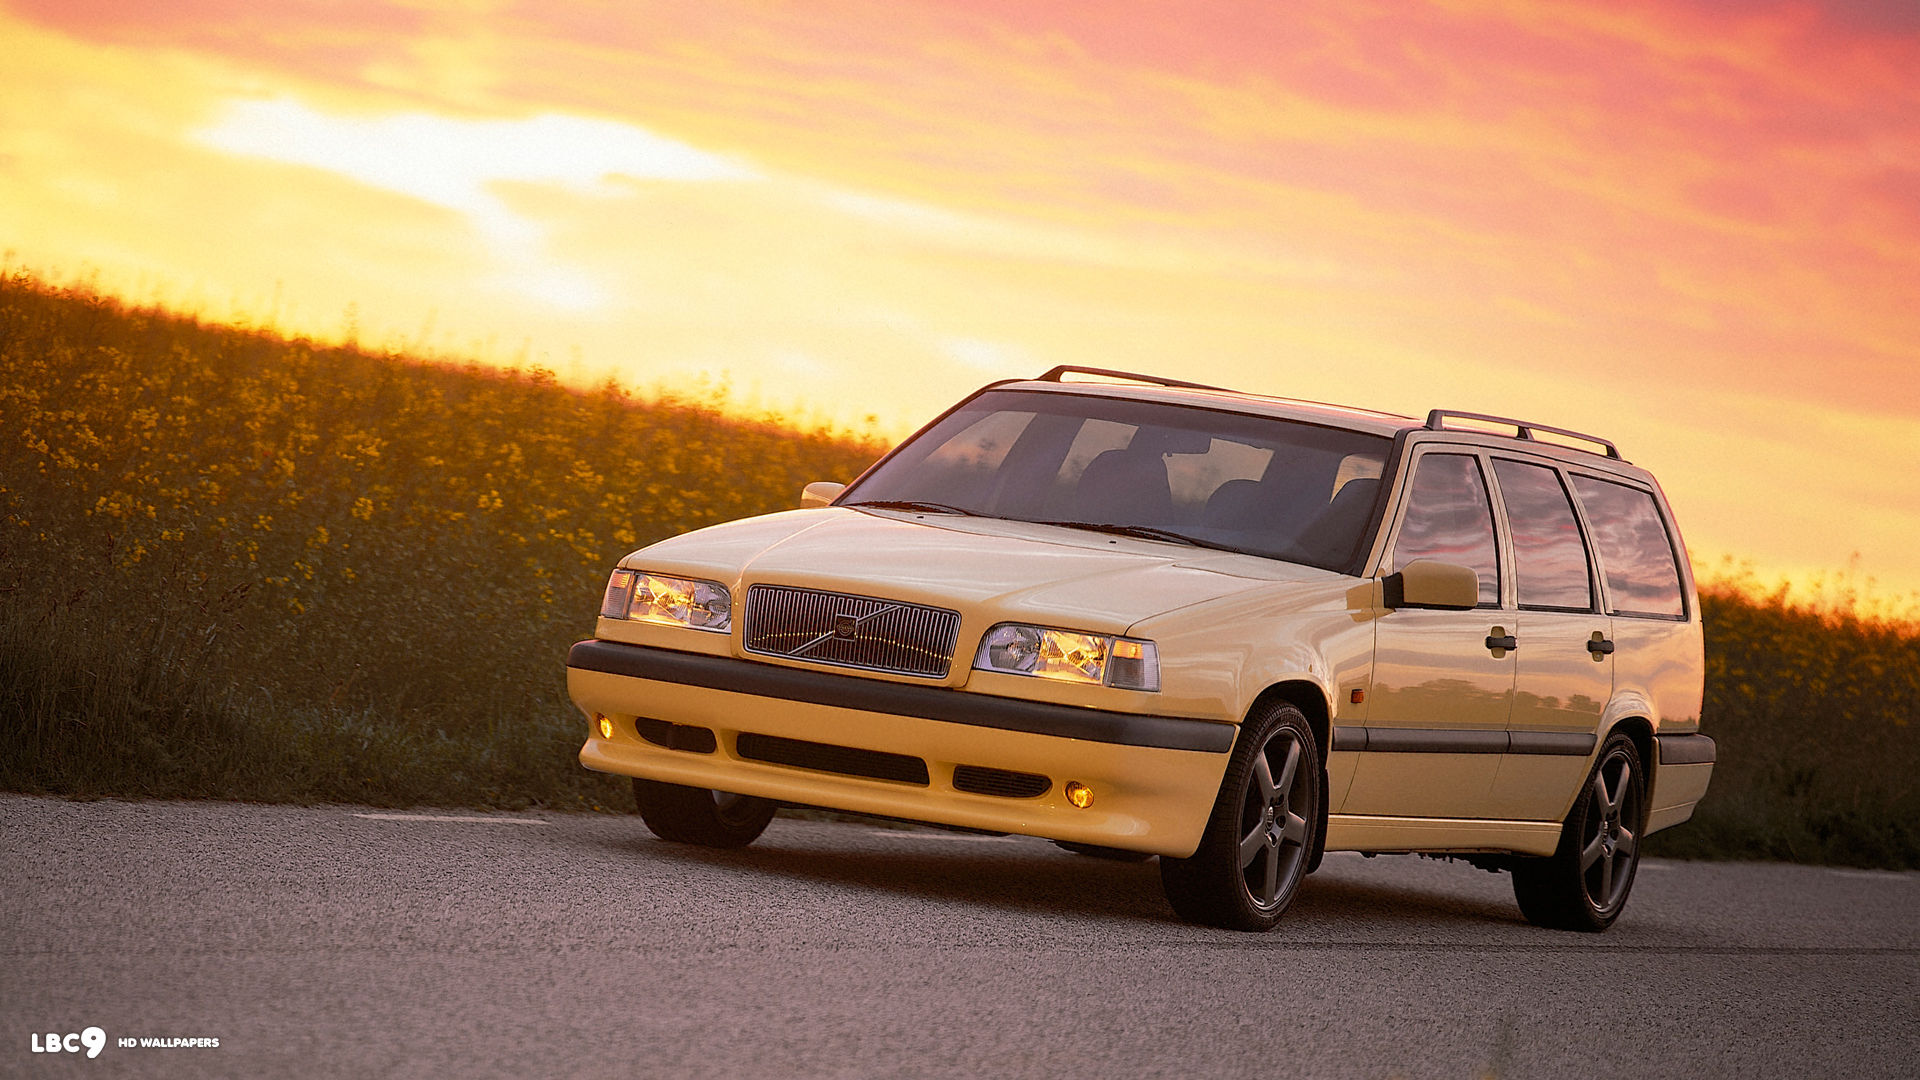 Volvo 850 Wallpapers and Background Images   stmednet 1920x1080